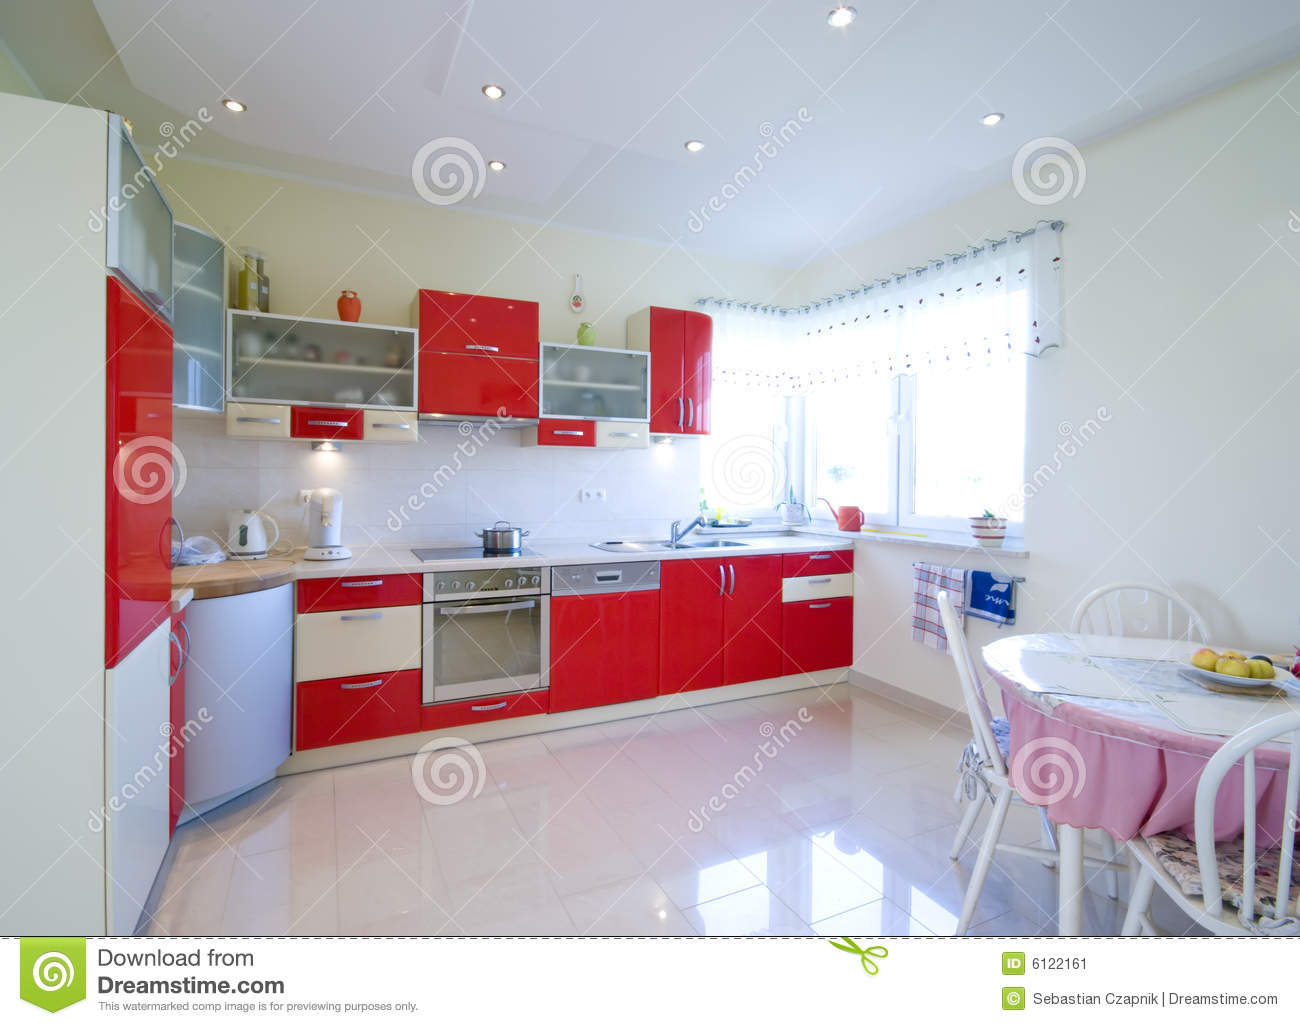 Red kitchen stock image. Image of bright, chairs, home - 6122161